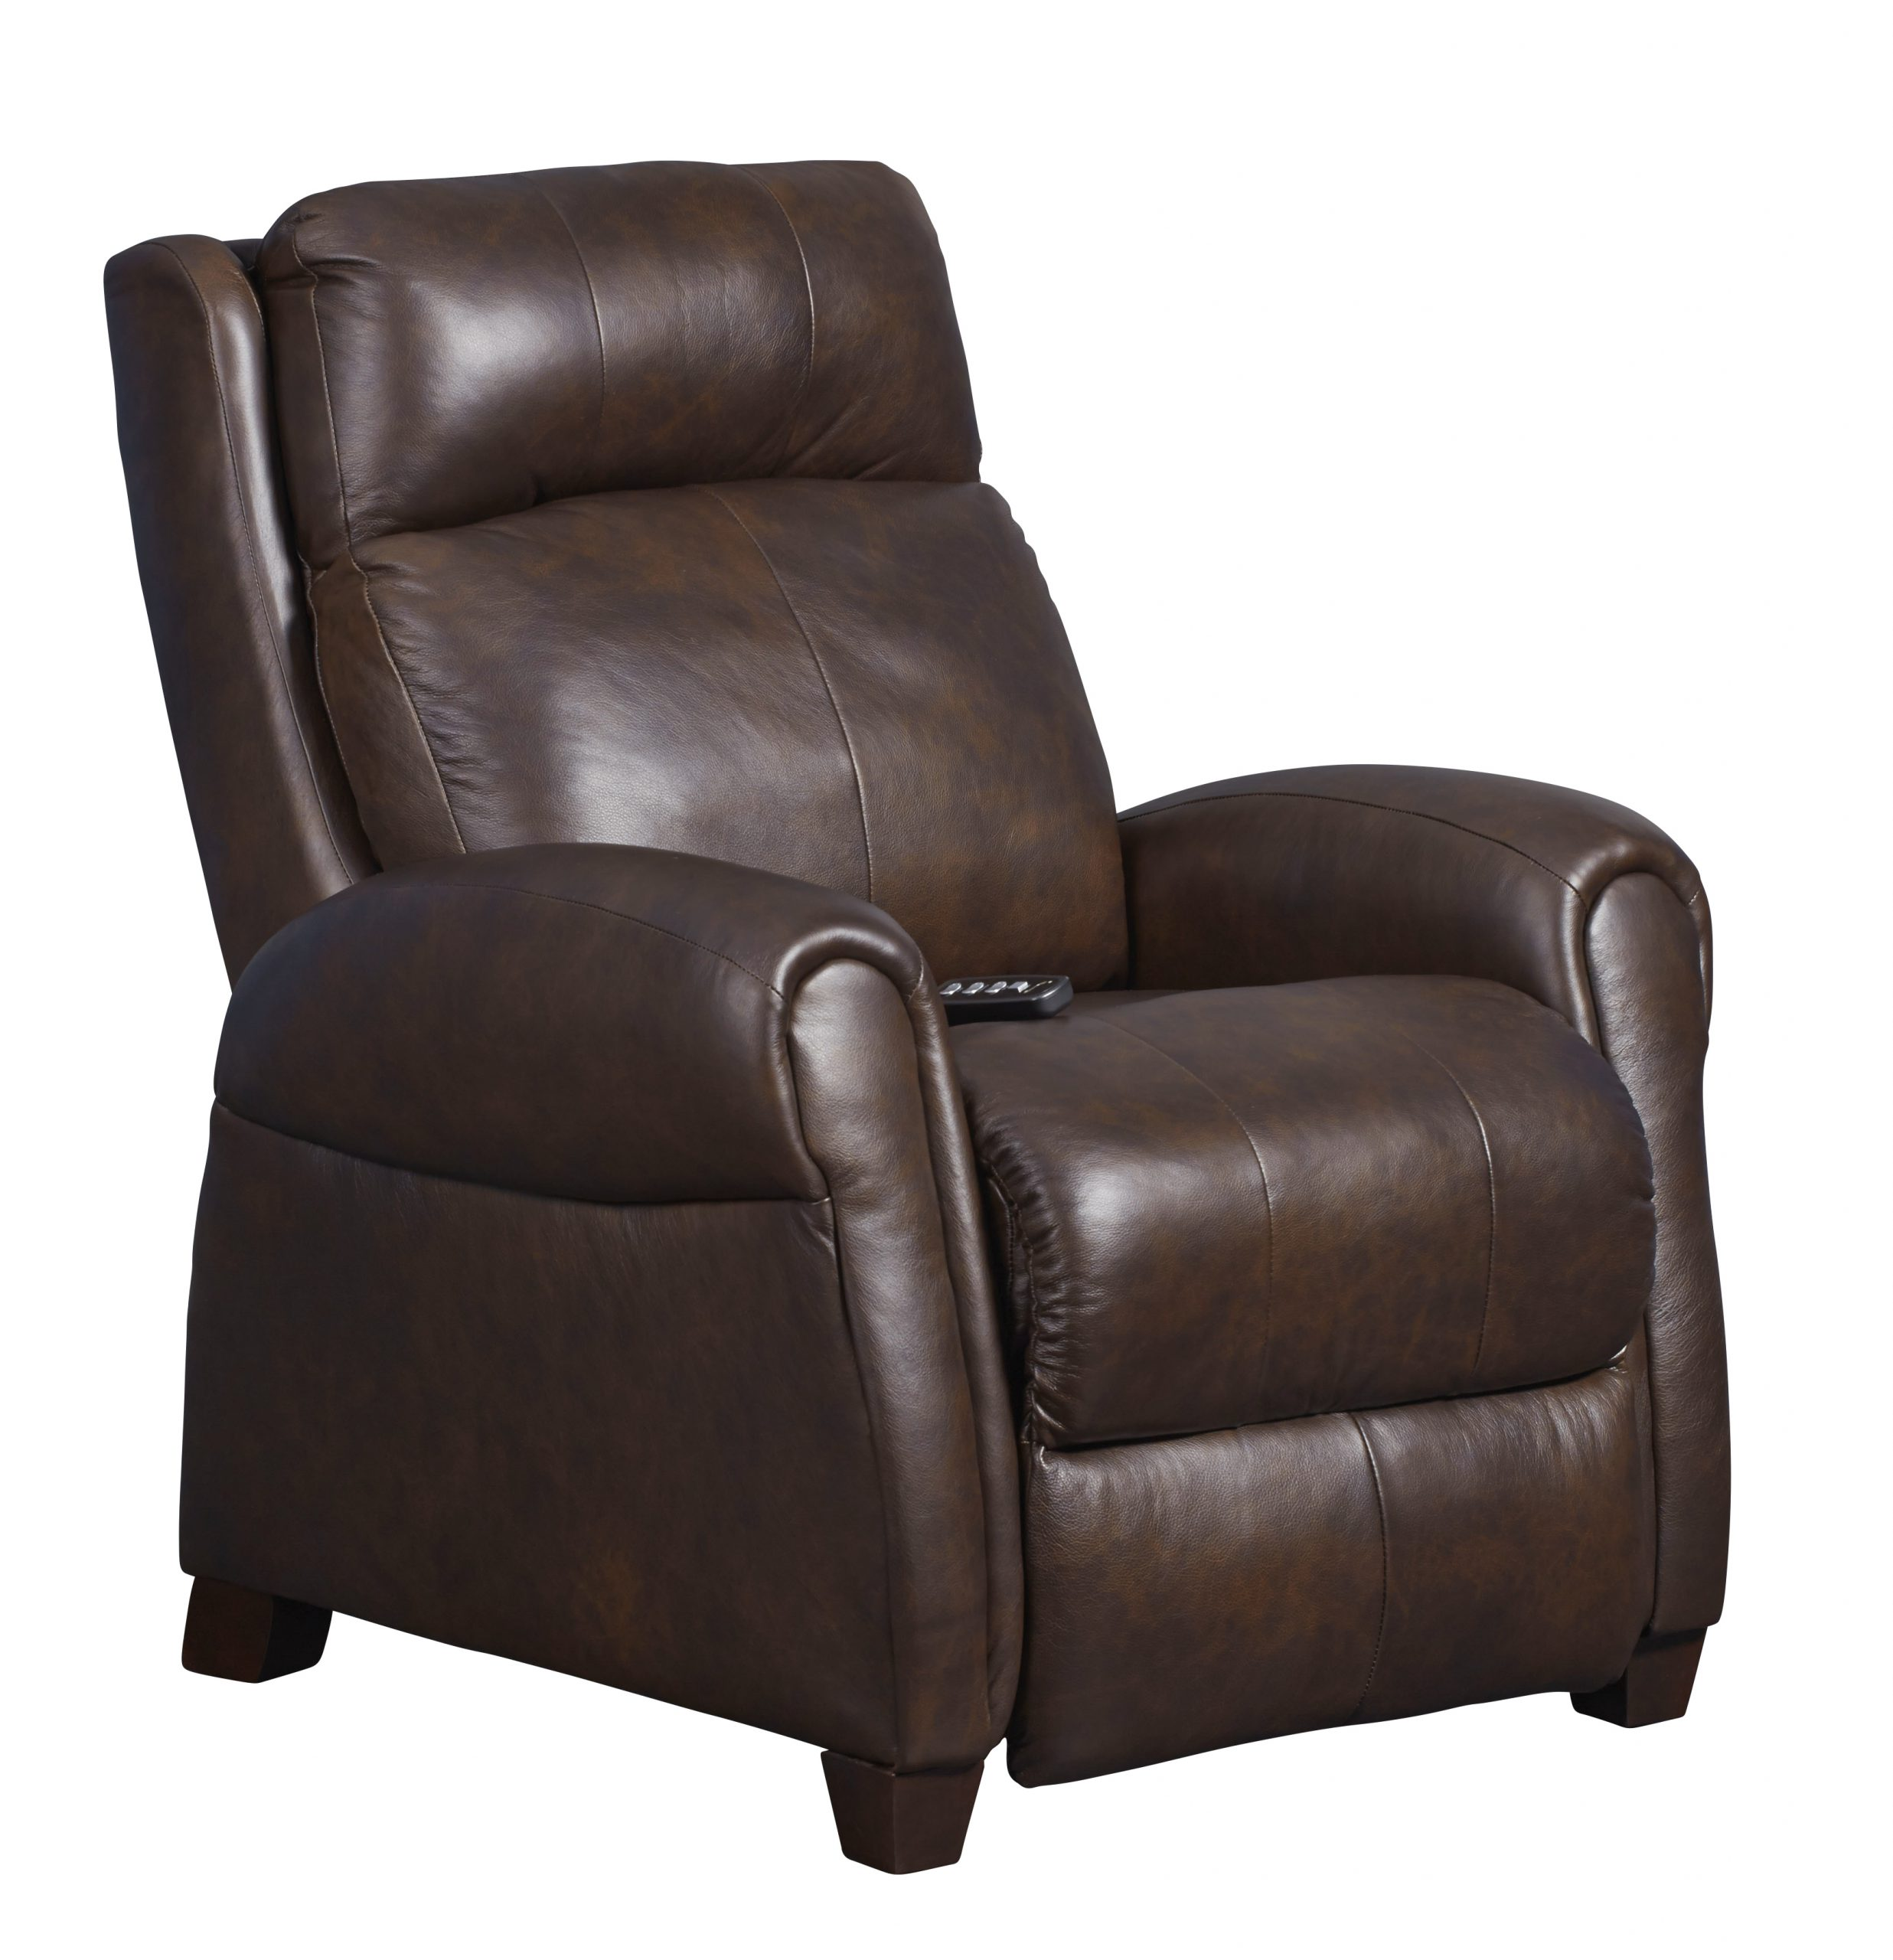 6074p-saturn-in-970-21-eastwood-colorado-recliner-sweep-scaled